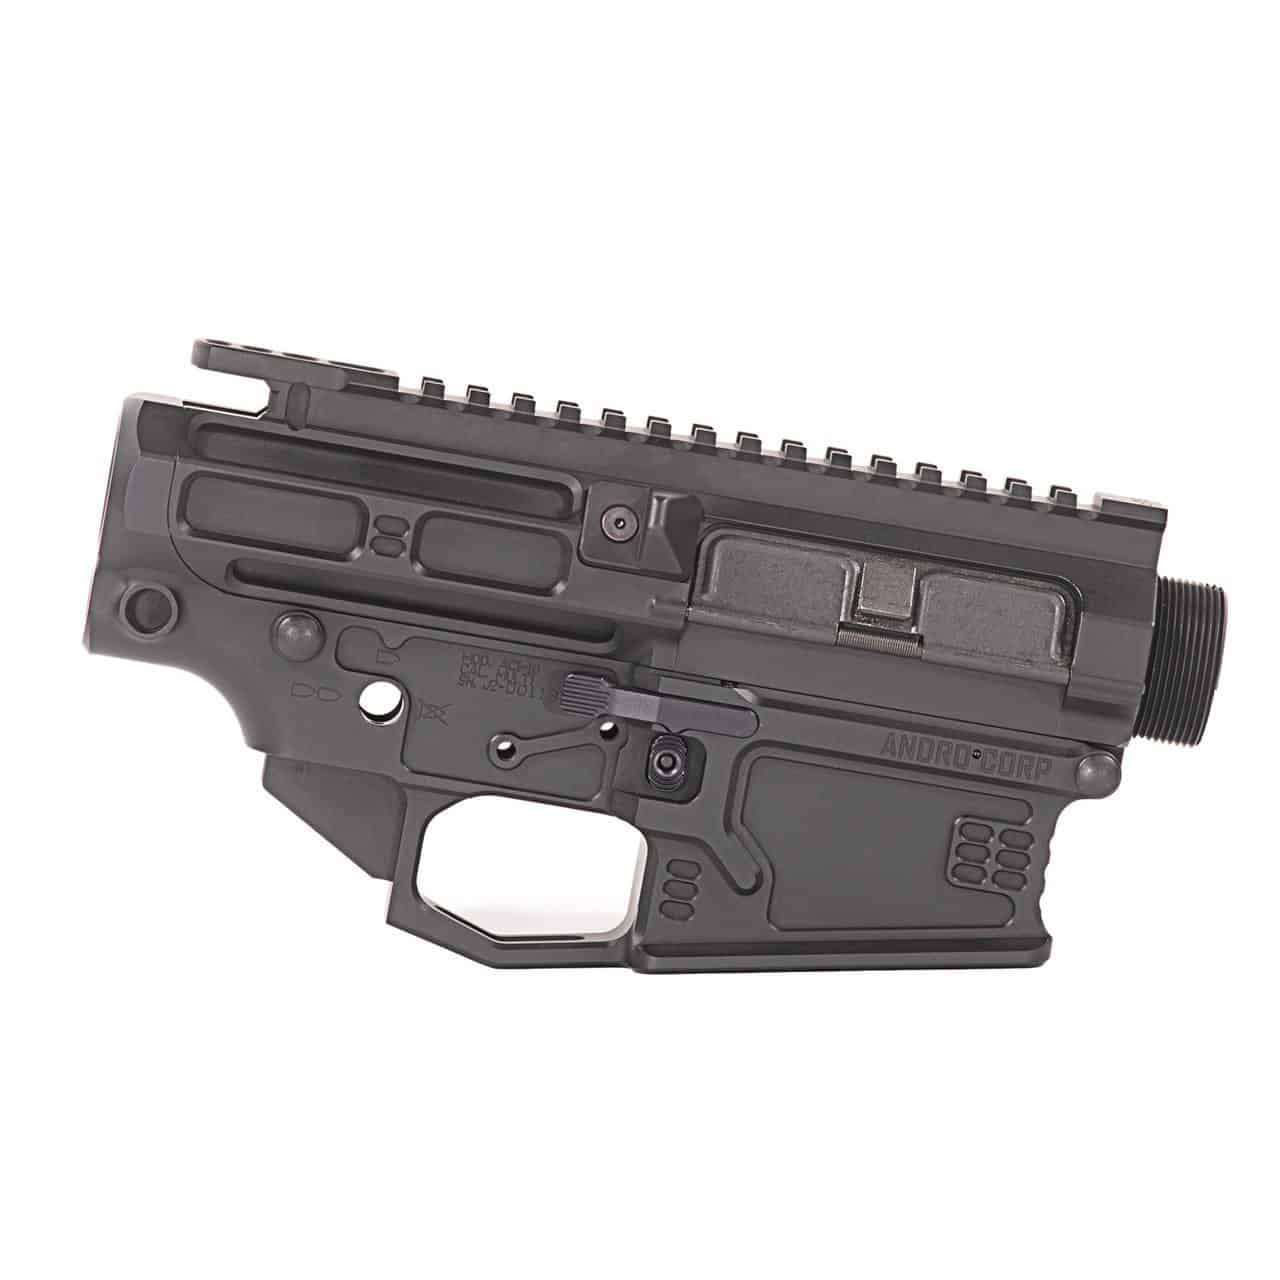 AR10 Ambidextrous Billet Receiver Set, Andro Corp